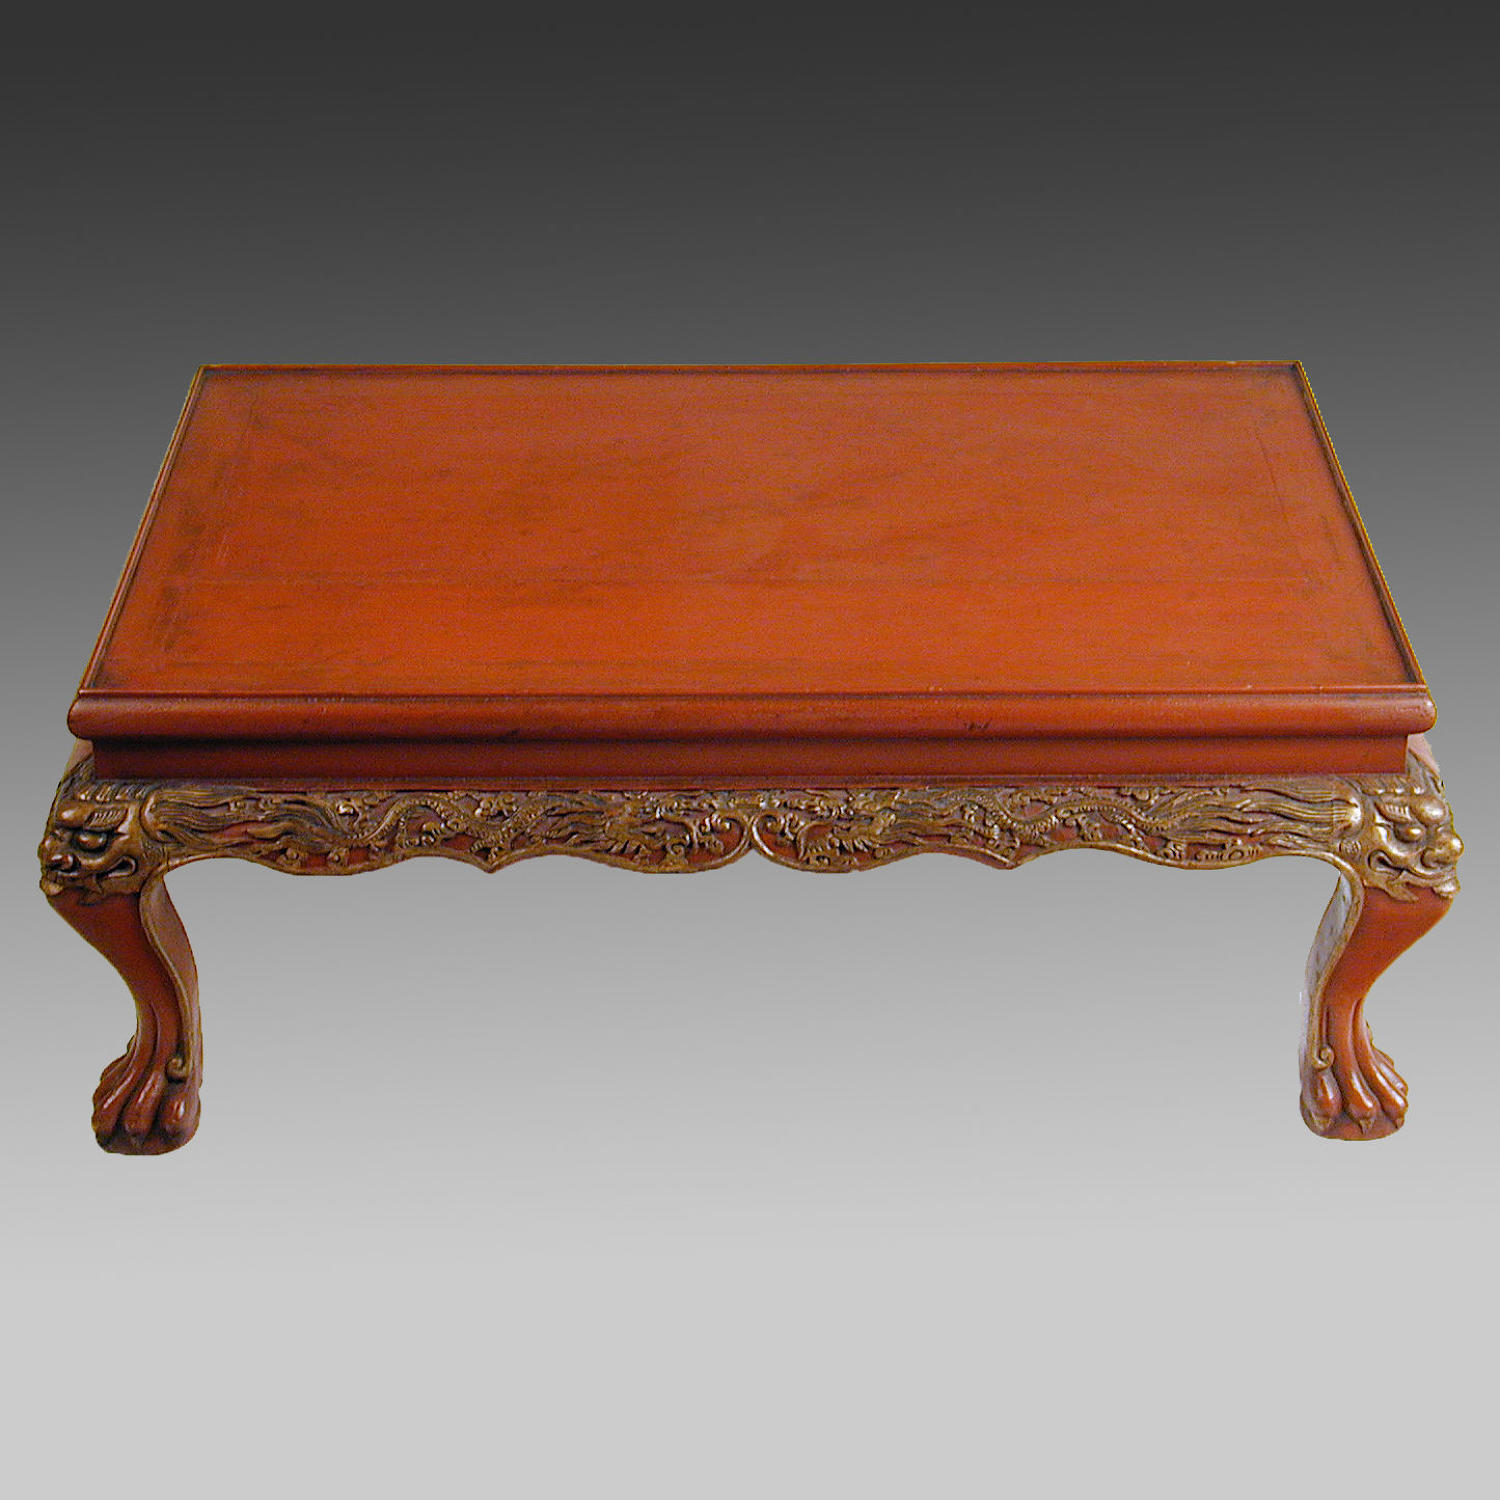 19th century Chinese red lacquer table